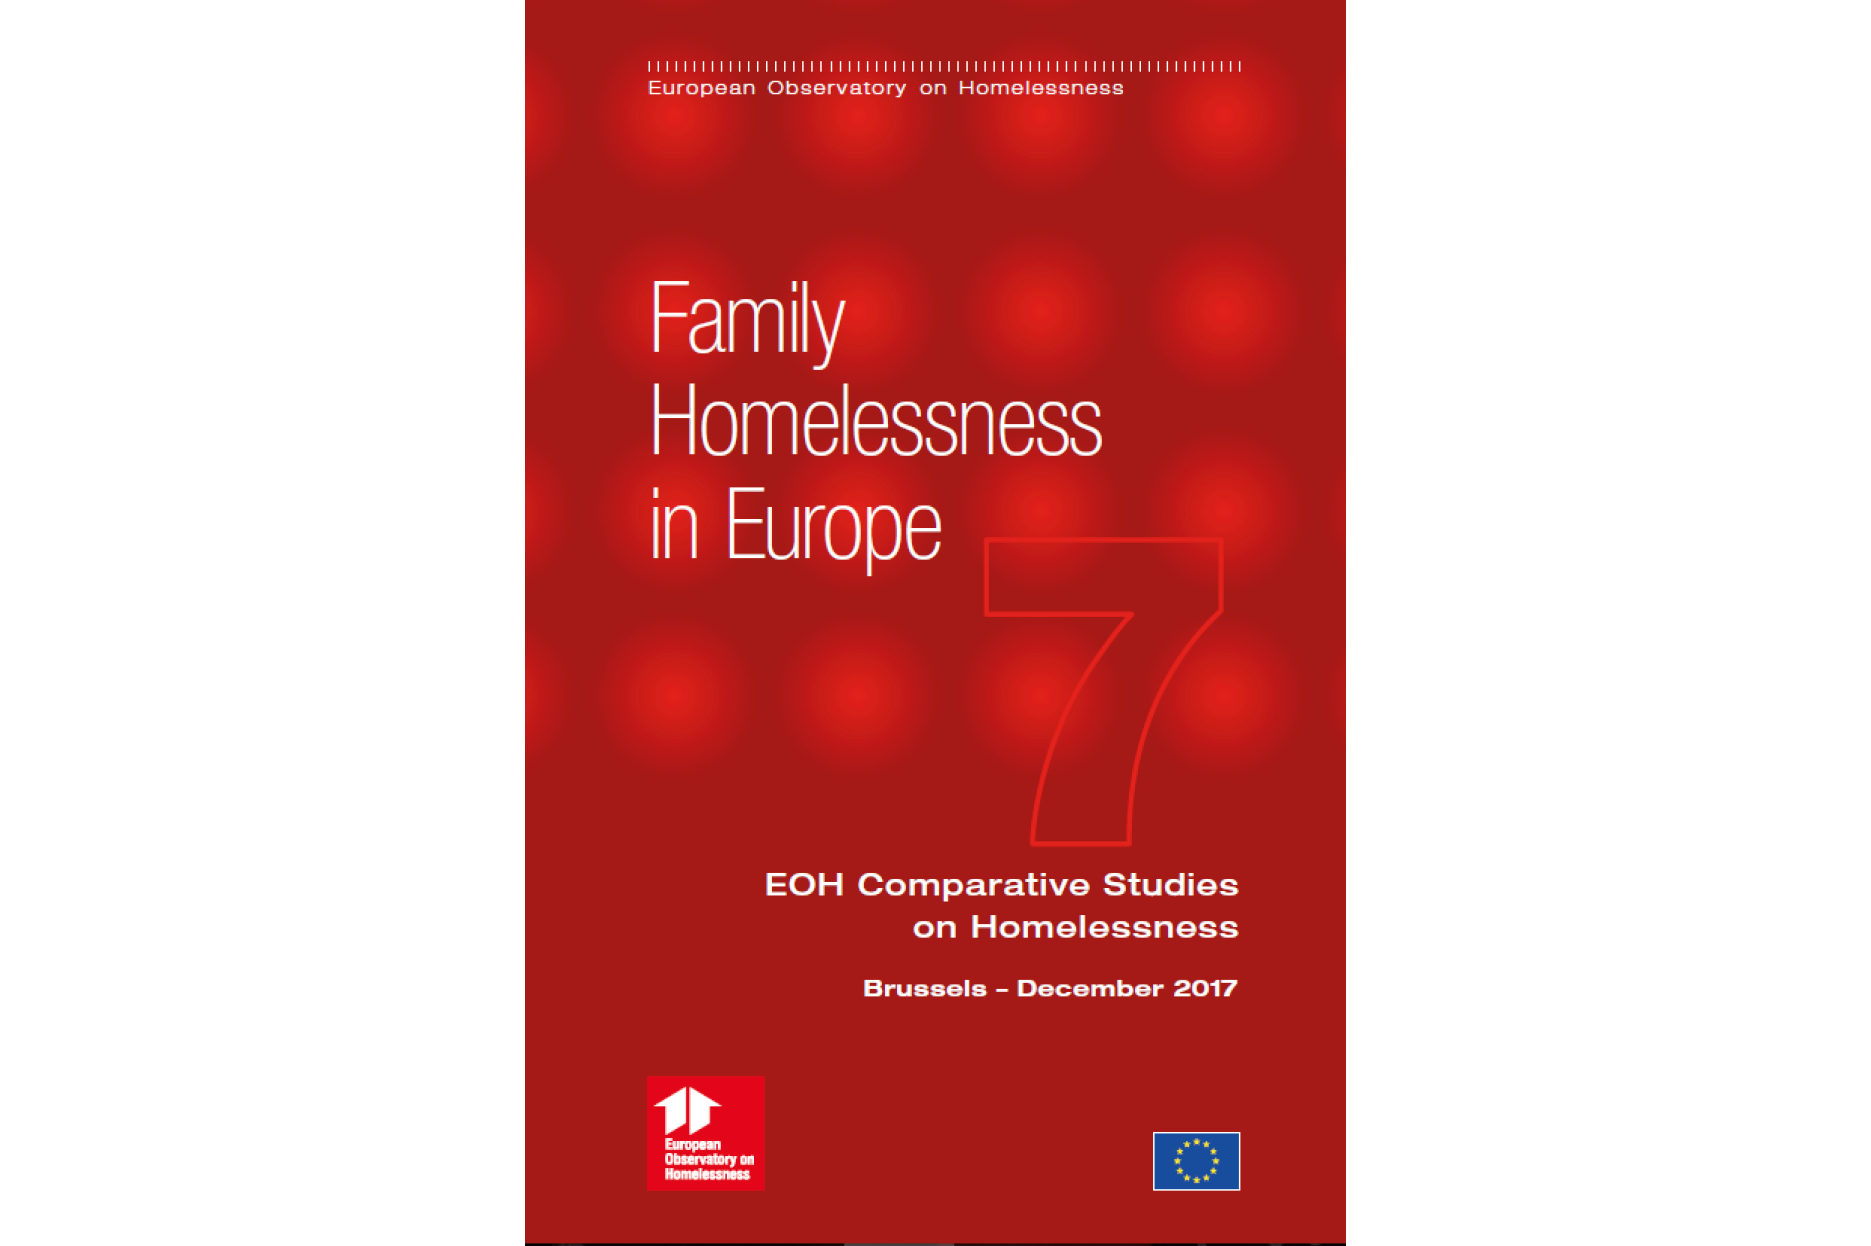 Comparative Studies on Homelessness: Number 7 - 2017